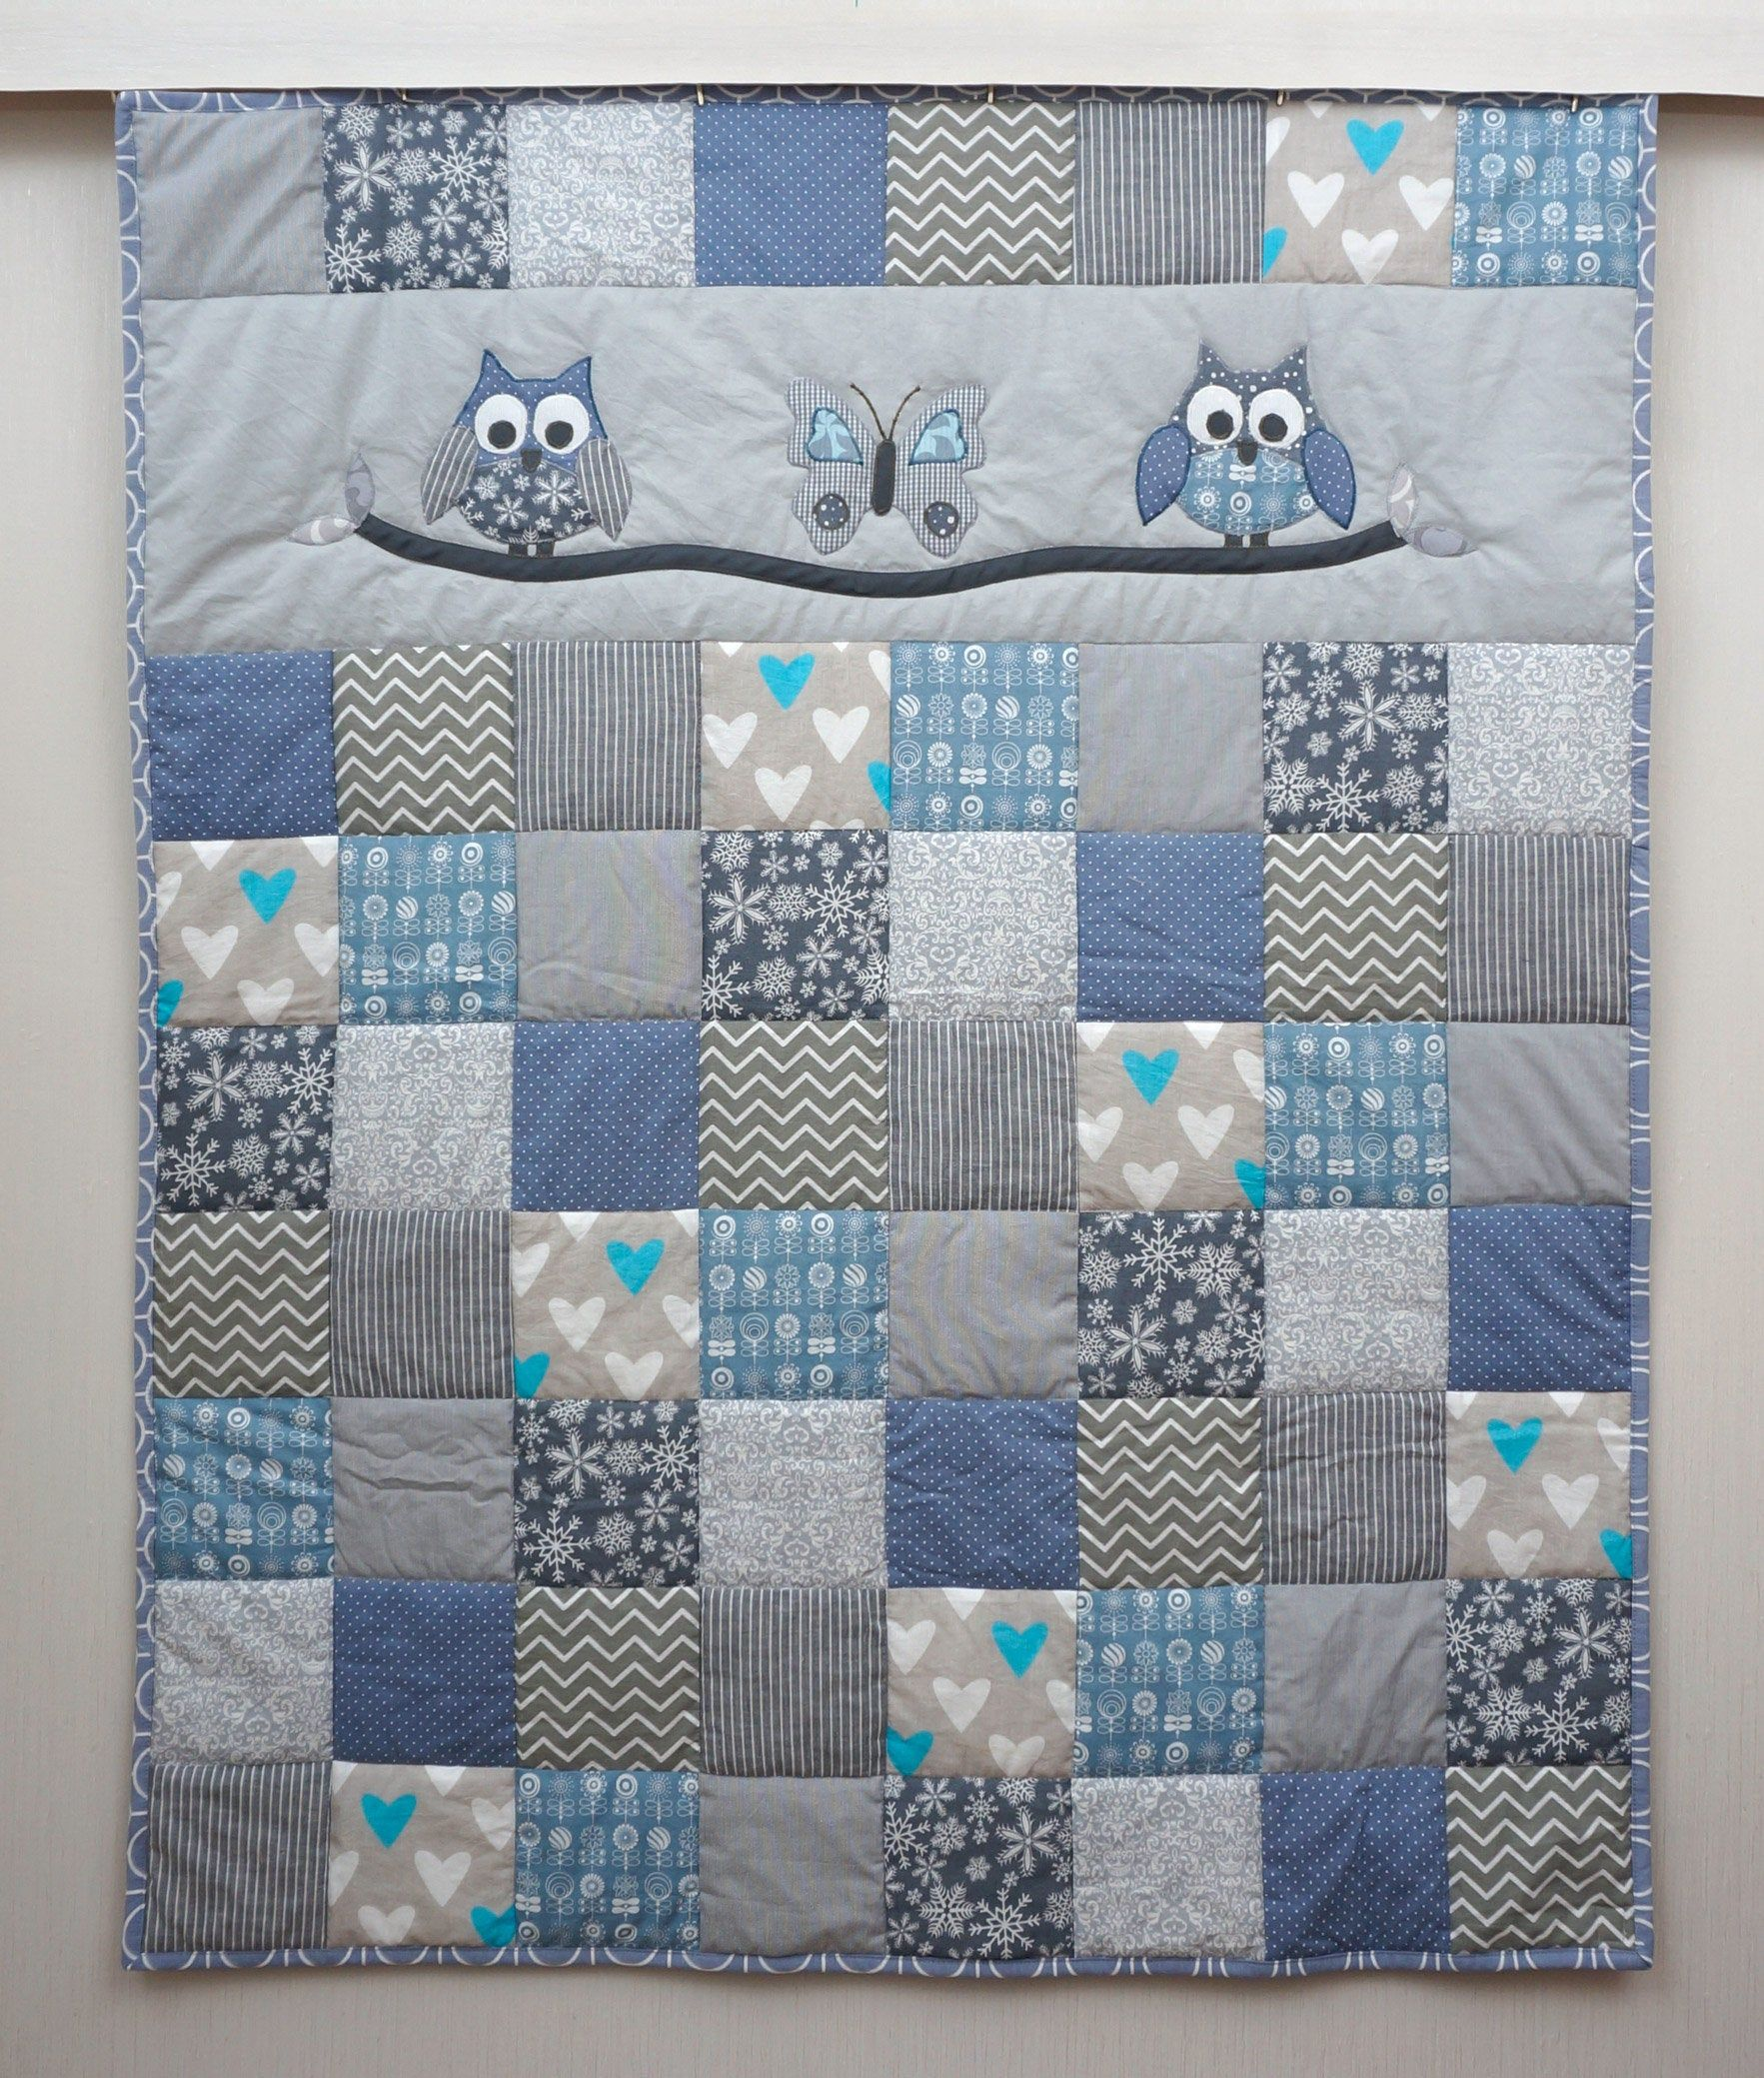 Crib Quilt Owl Quilt Baby Boy Quilt Blue And Gery Patchwork Blanket Handmade Gift For Boy Baby Shower Gift Baby Boy Quilts Baby Boy Quilt Patterns Owl Baby Quilts